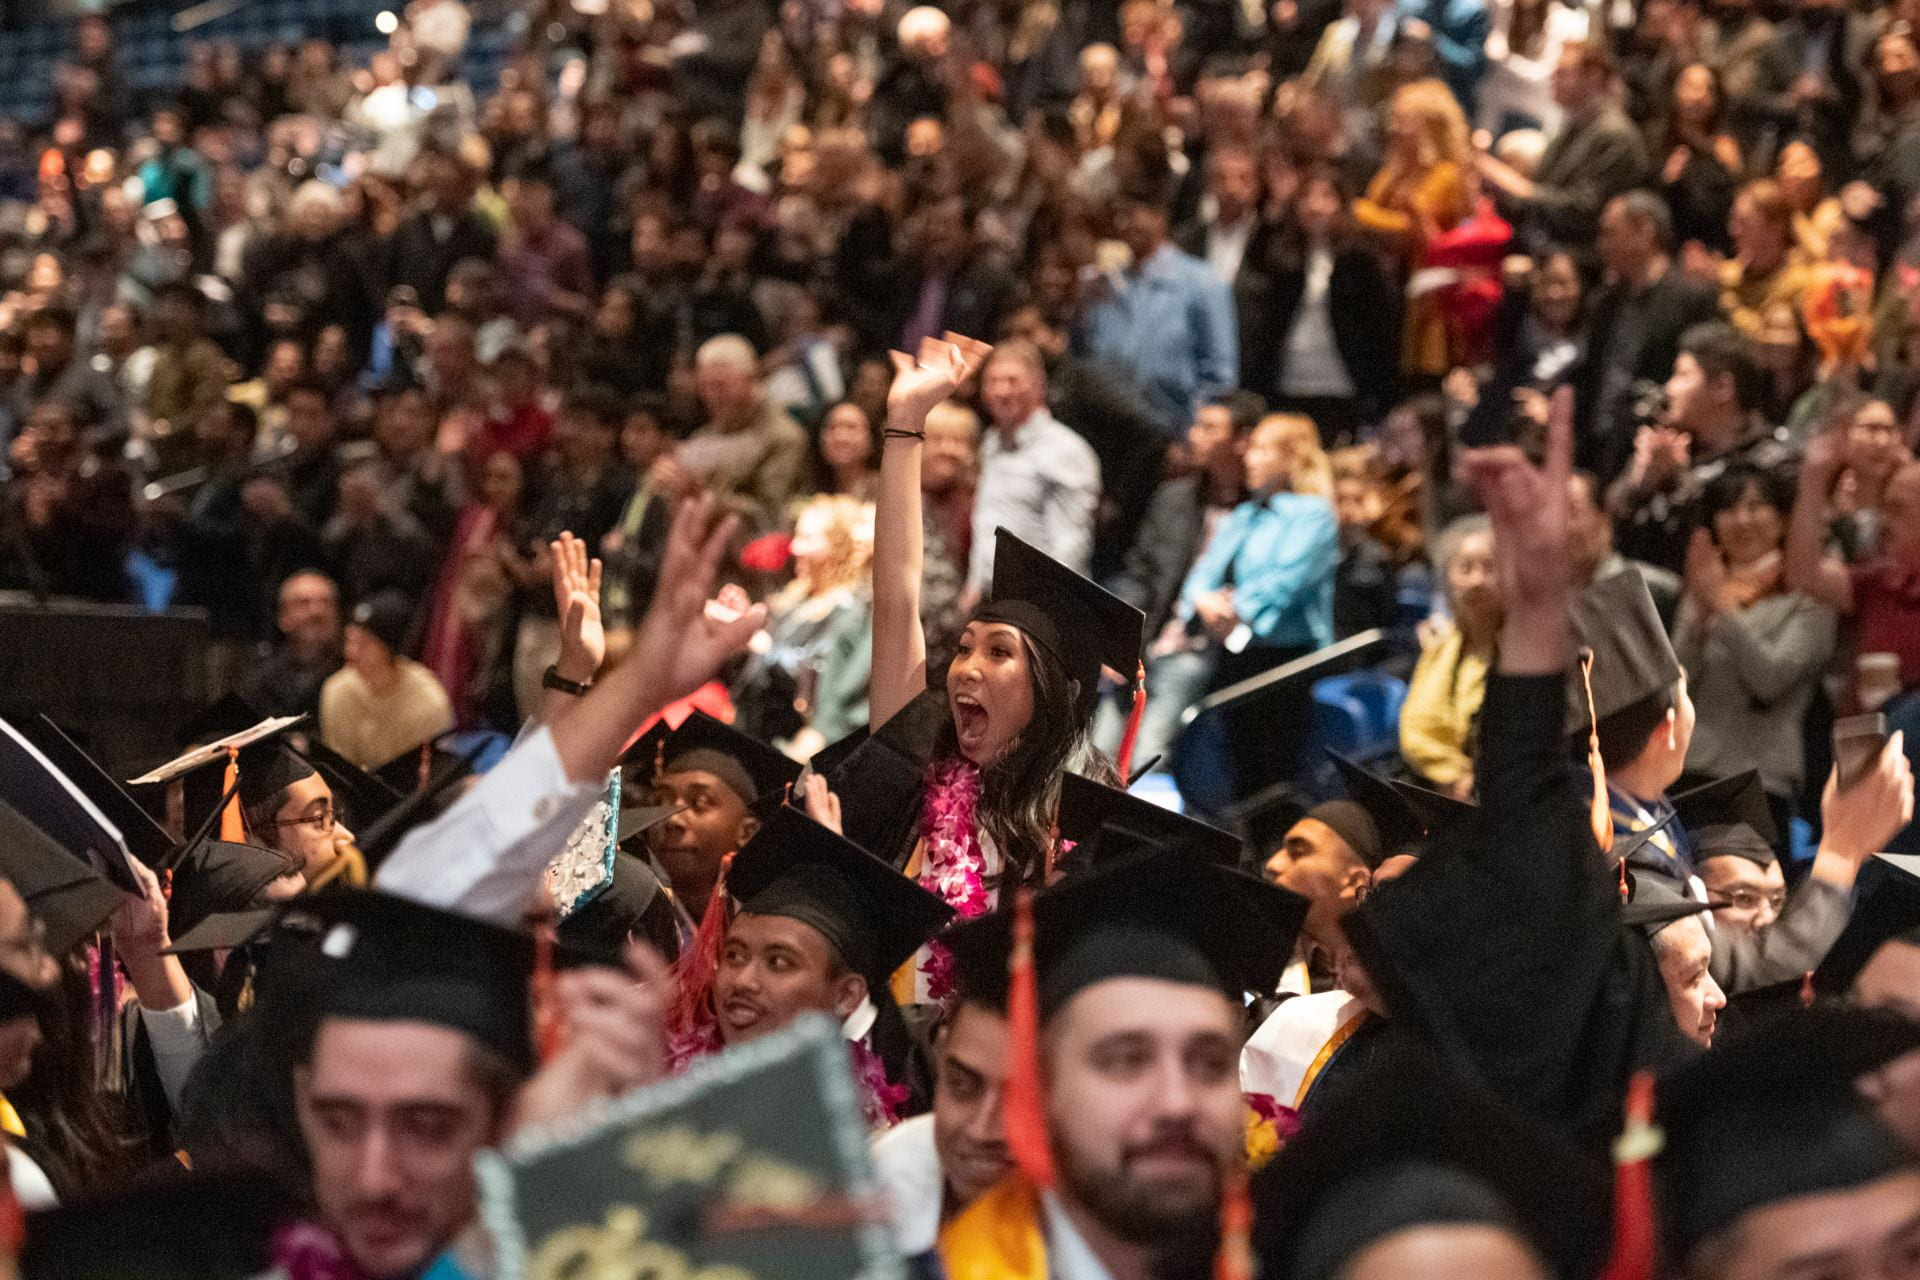 College of Engineering students cheer during commencement in fall 2019. Photo courtesy of Best Grad.